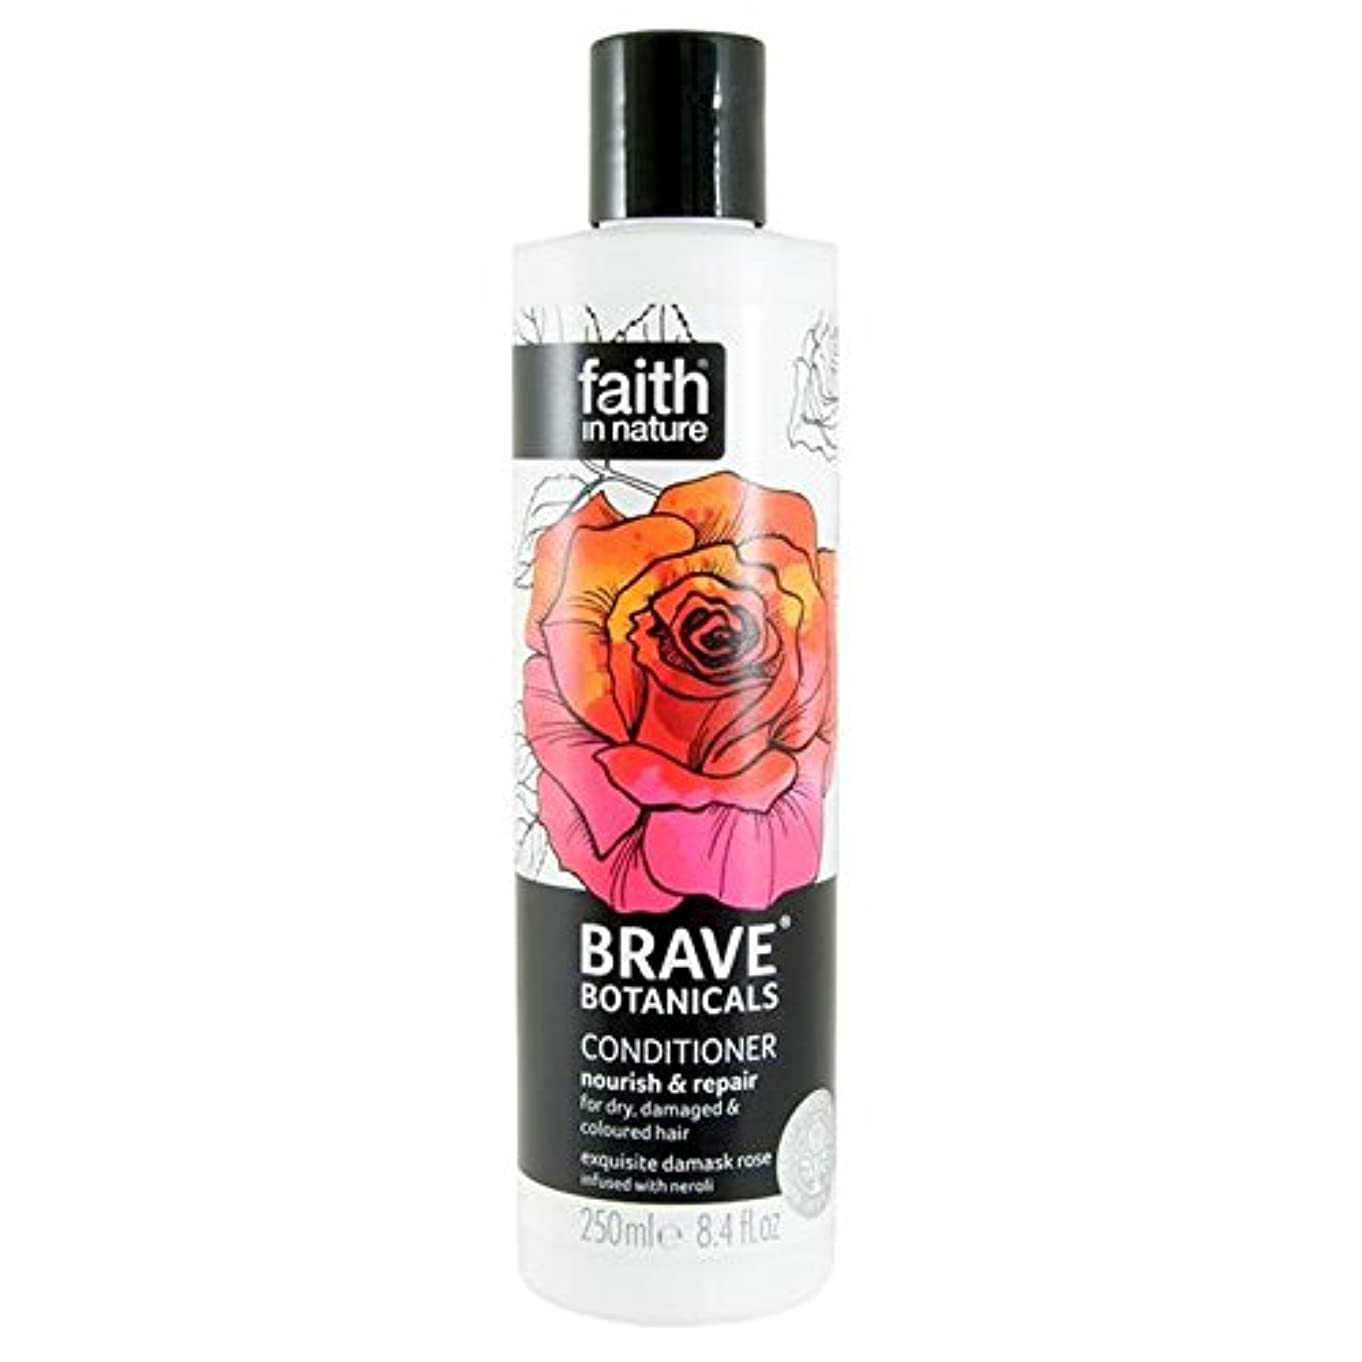 横たわる執着安息Brave Botanicals Rose & Neroli Nourish & Repair Conditioner 250ml (Pack of 2) - (Faith In Nature) 勇敢な植物は、ローズ&ネロリ...